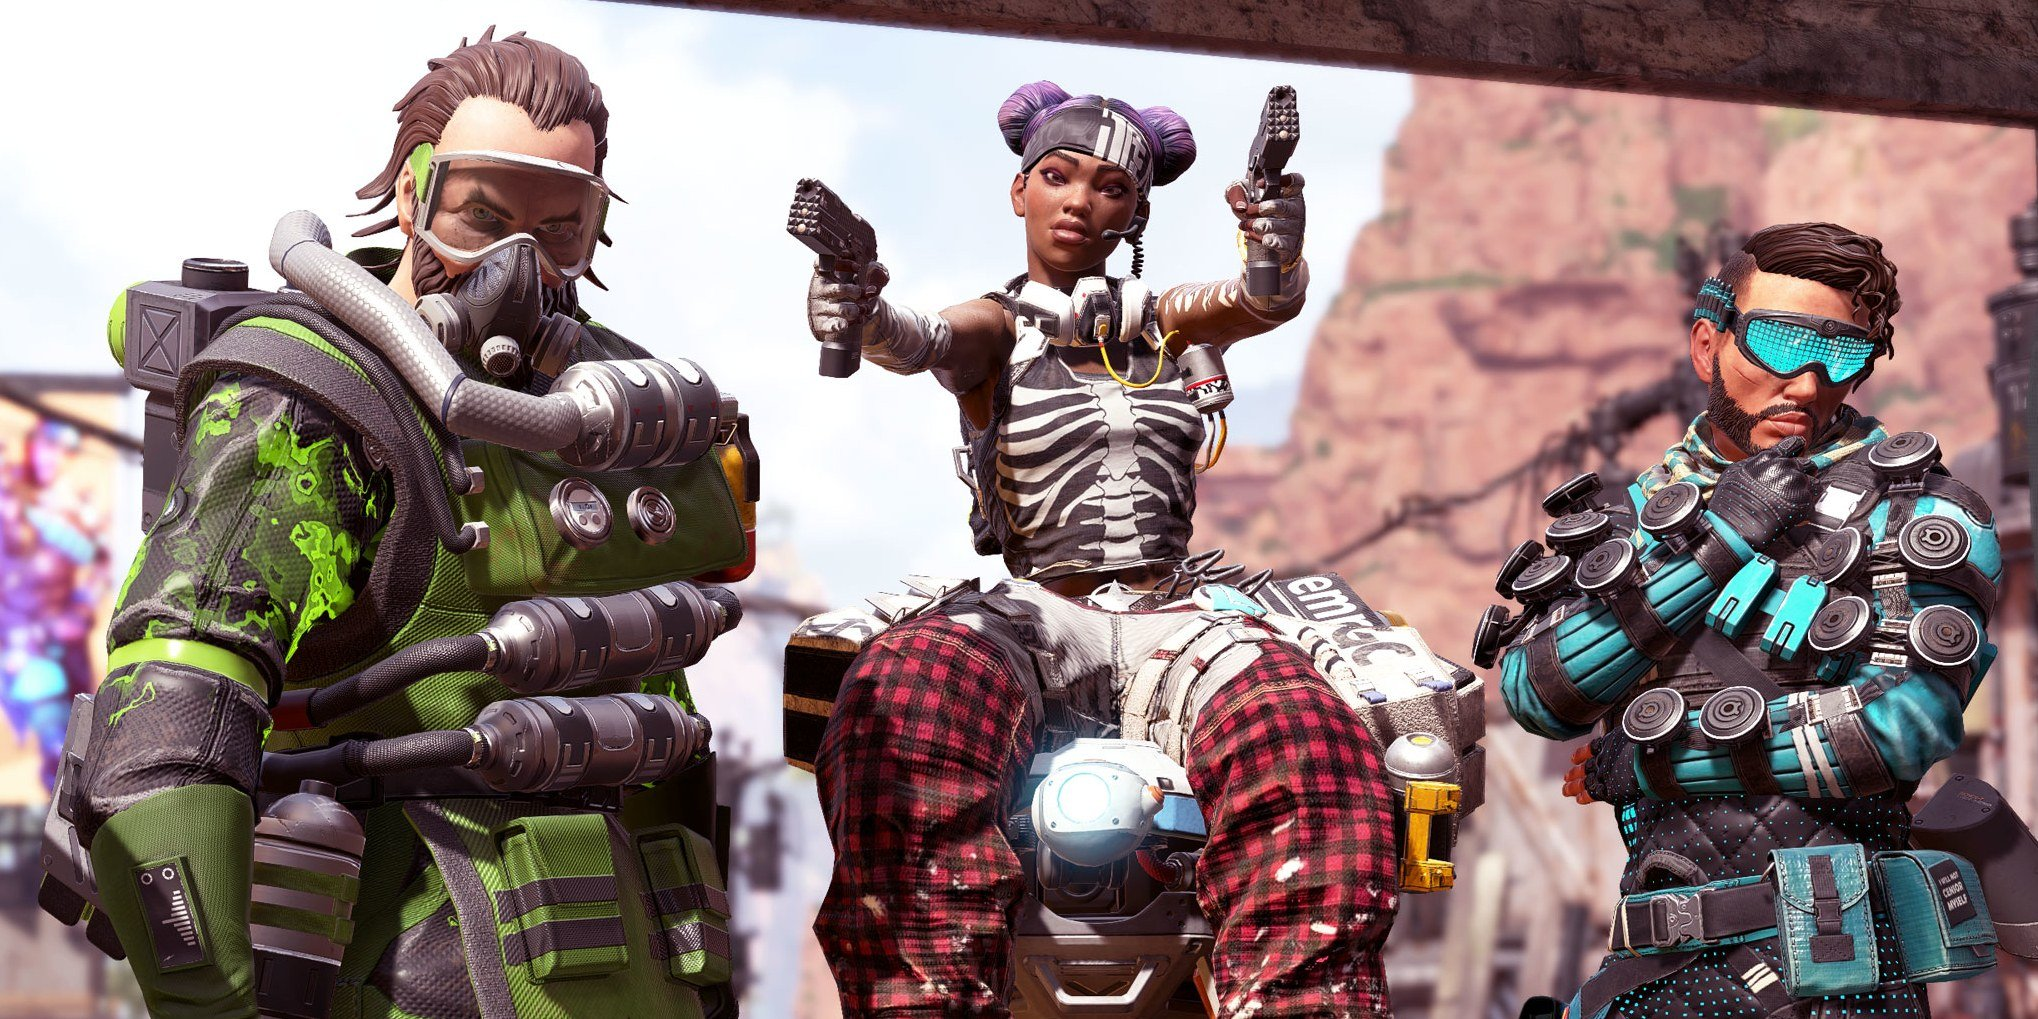 The patch notes for the 1.1.1 update reflects balance adjustments to Legends and weapons in Apex Legends.